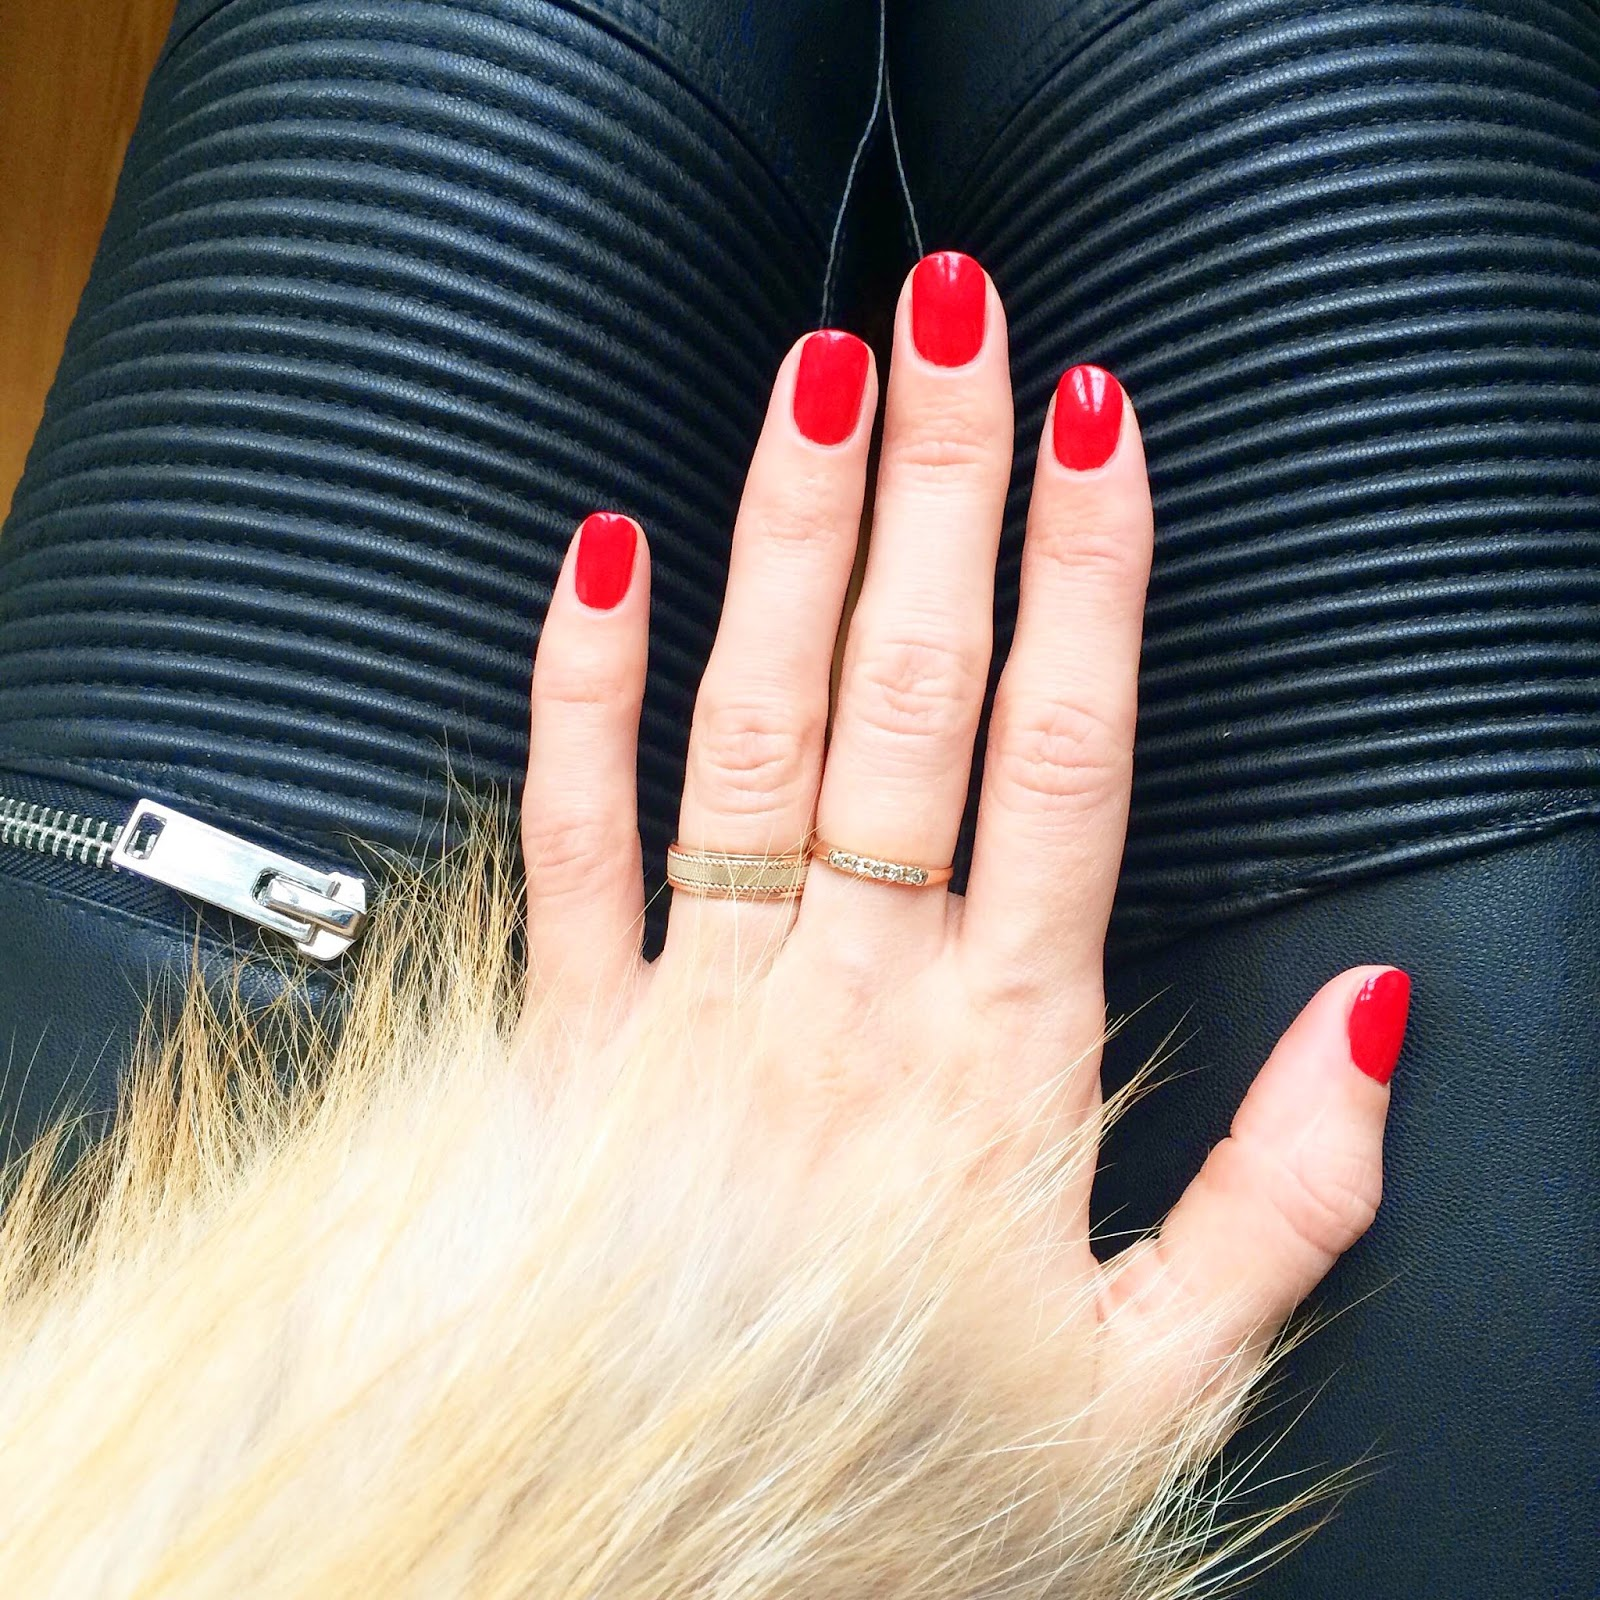 zara-leather-pants-fox-fur-jacket-red-sparitual-nail-polish